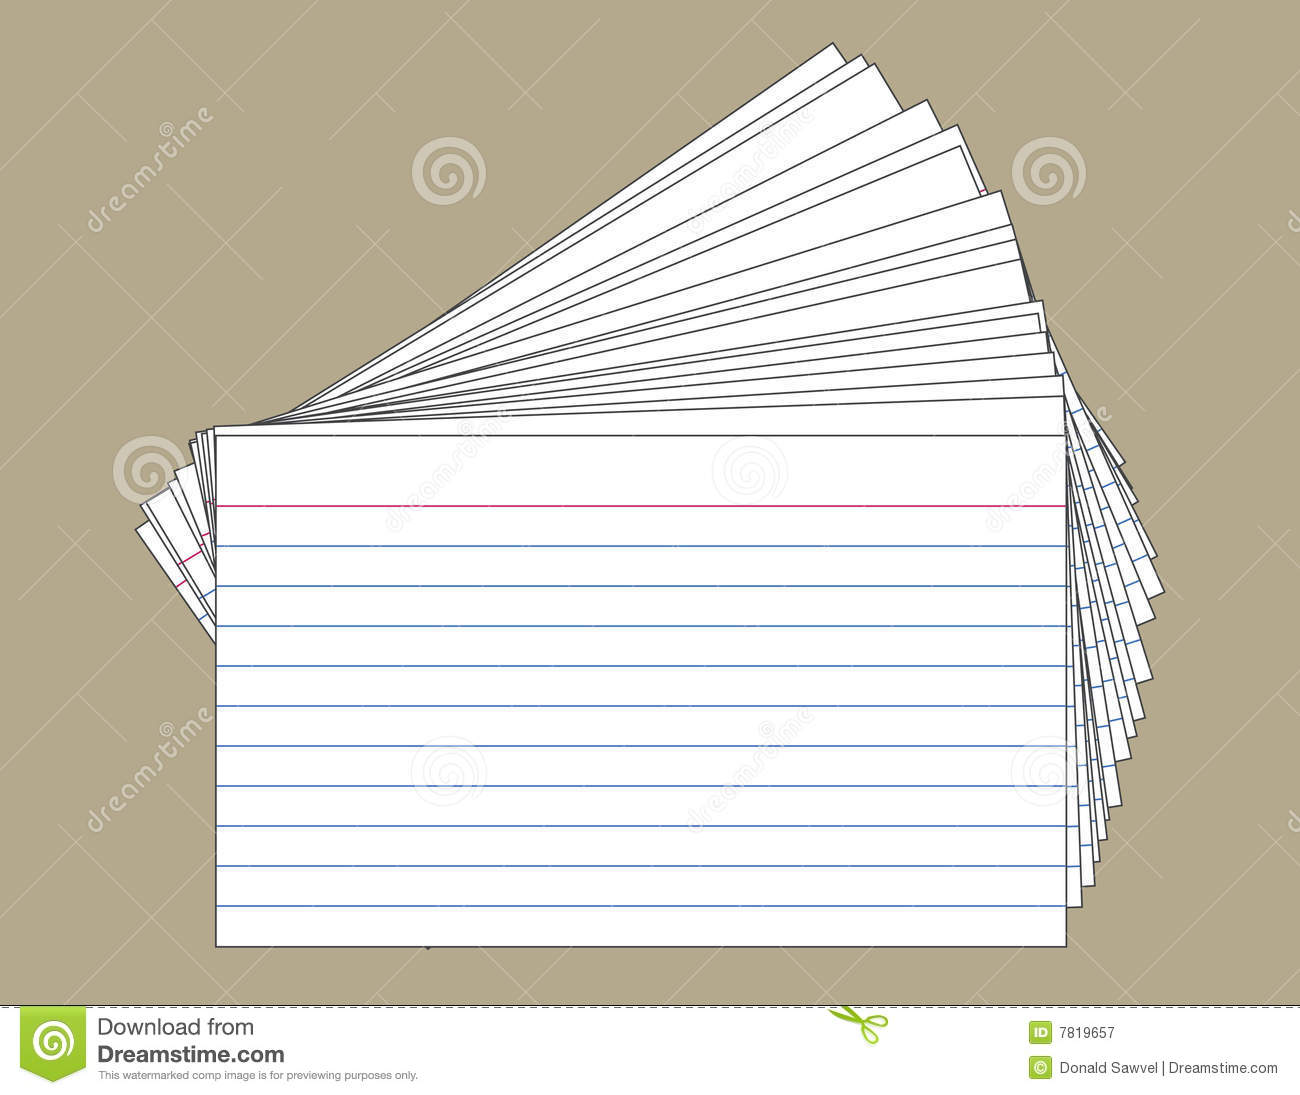 Printing On Index Cards: Stack Of Index Cards Stock Vector. Illustration Of Lined